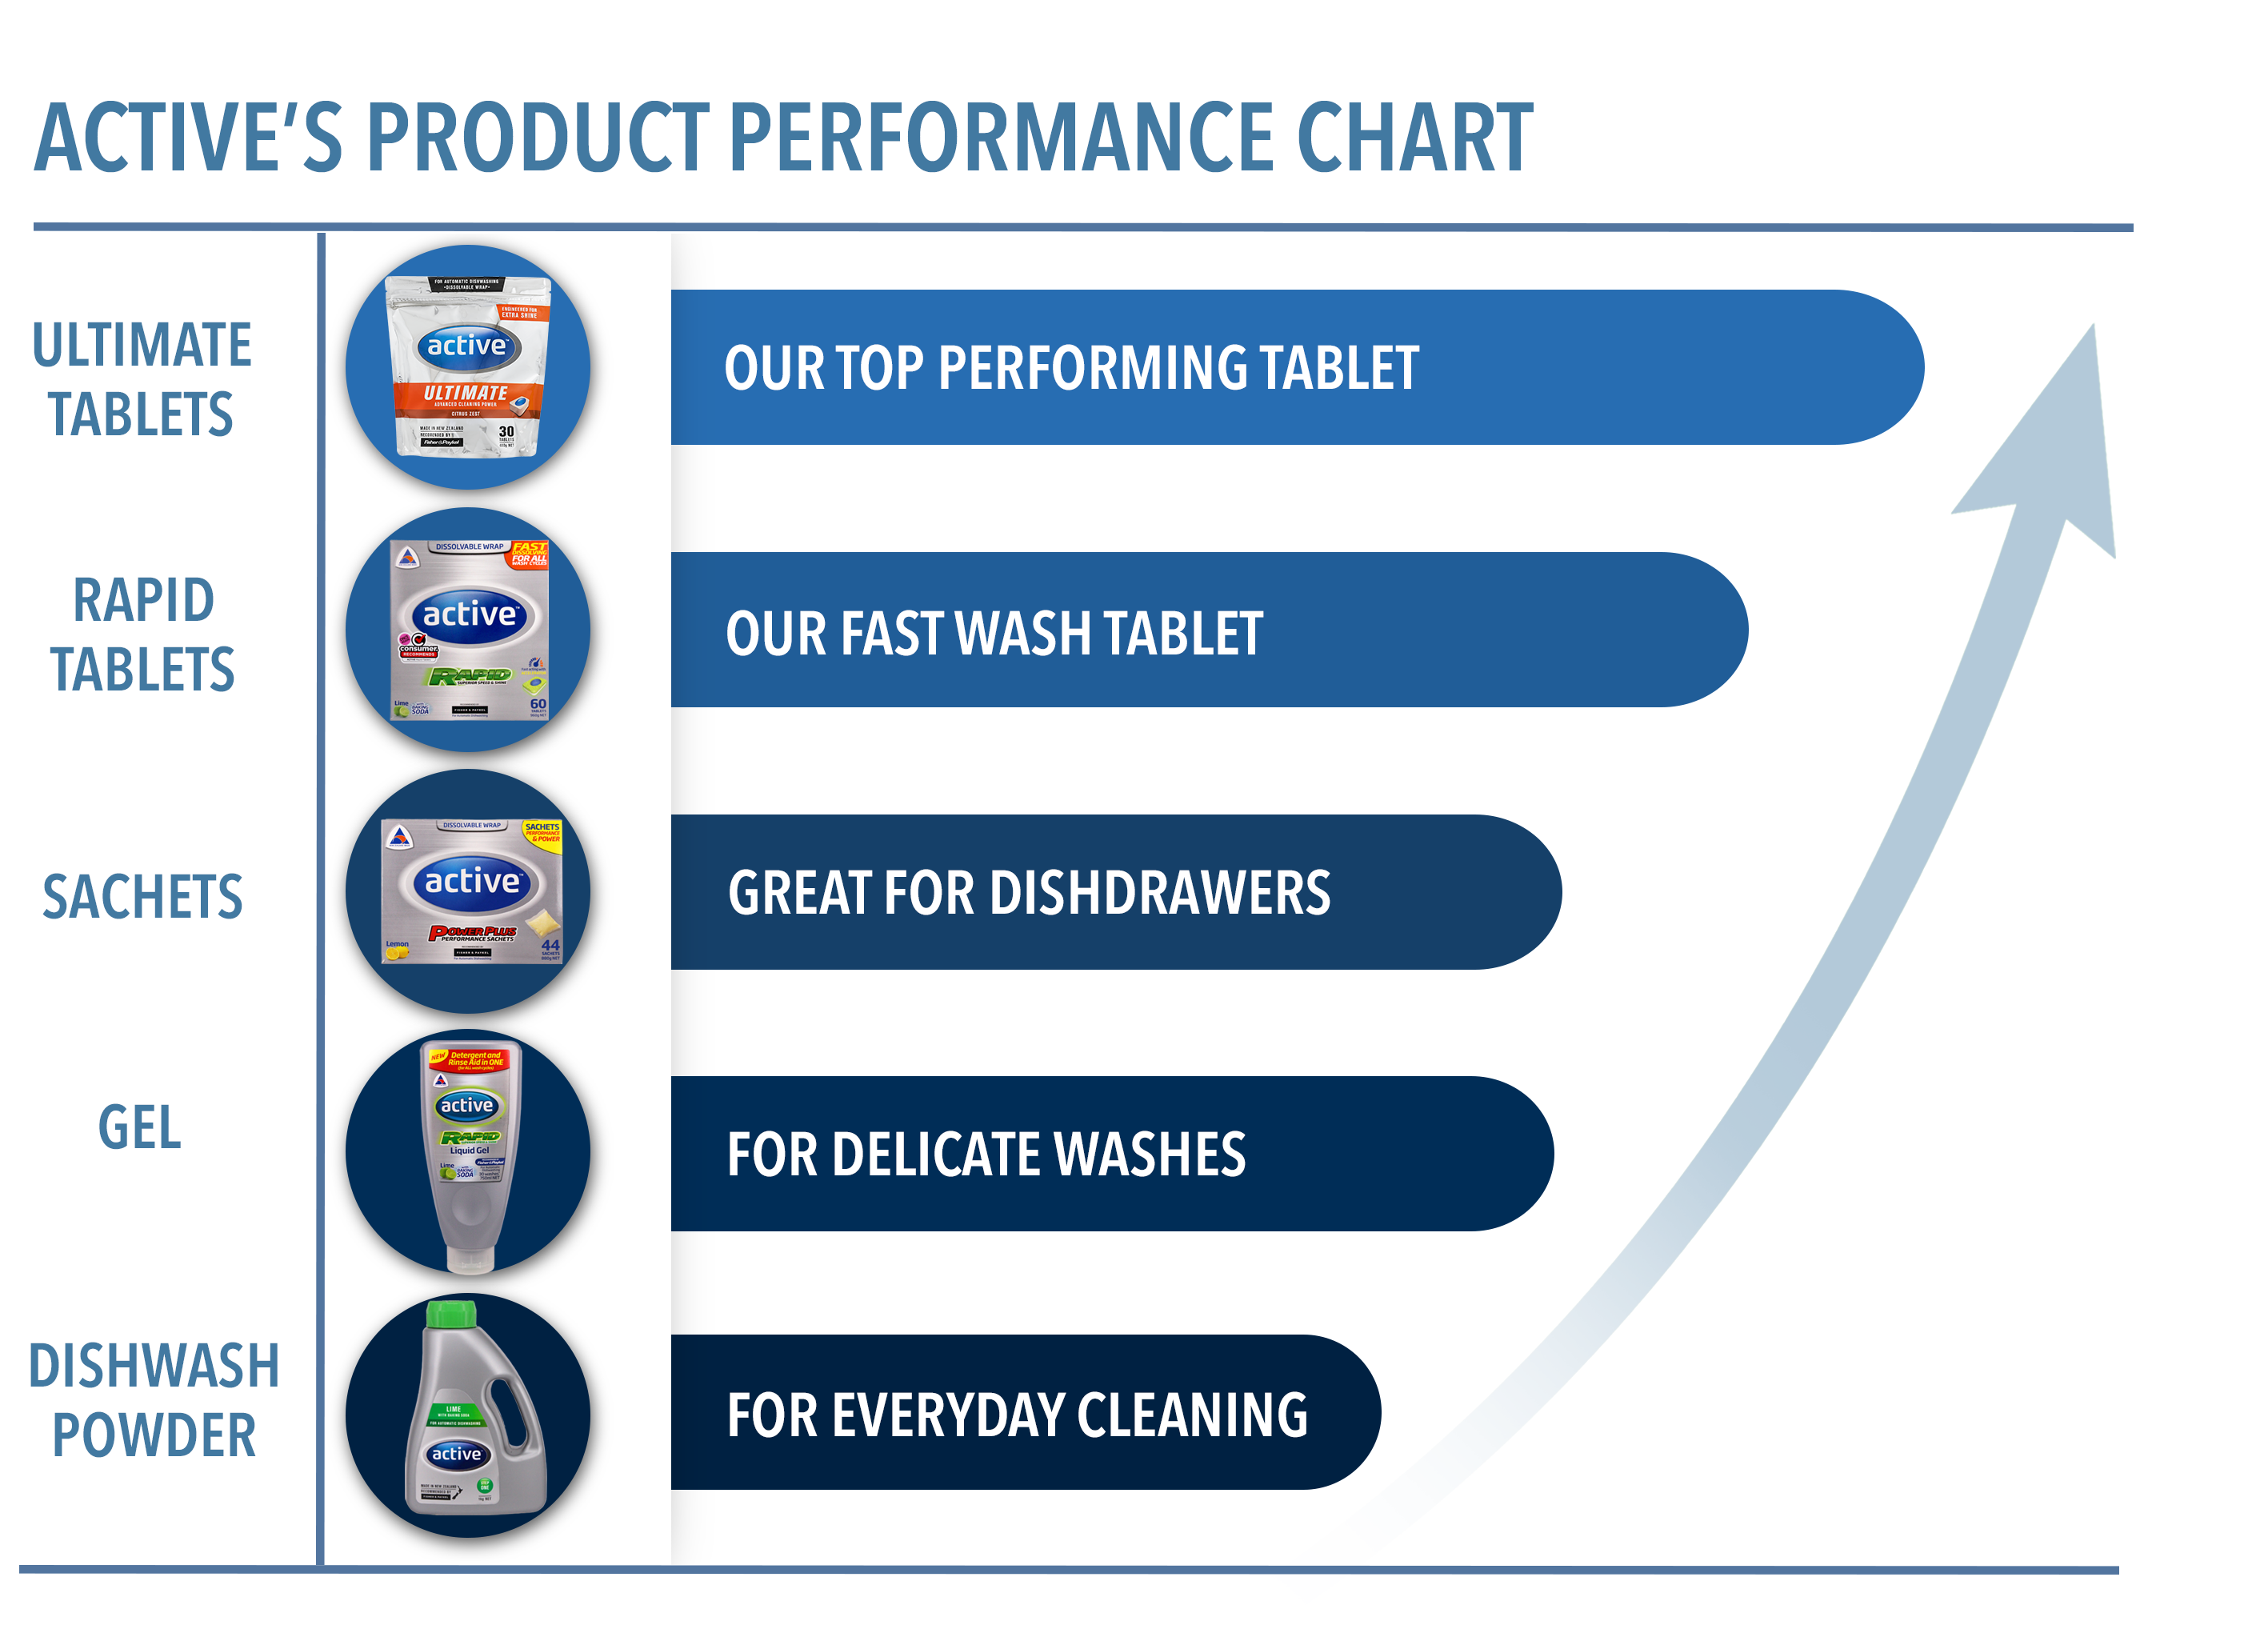 ACTIVE'S PRODUCT PERFORMANCE CHART